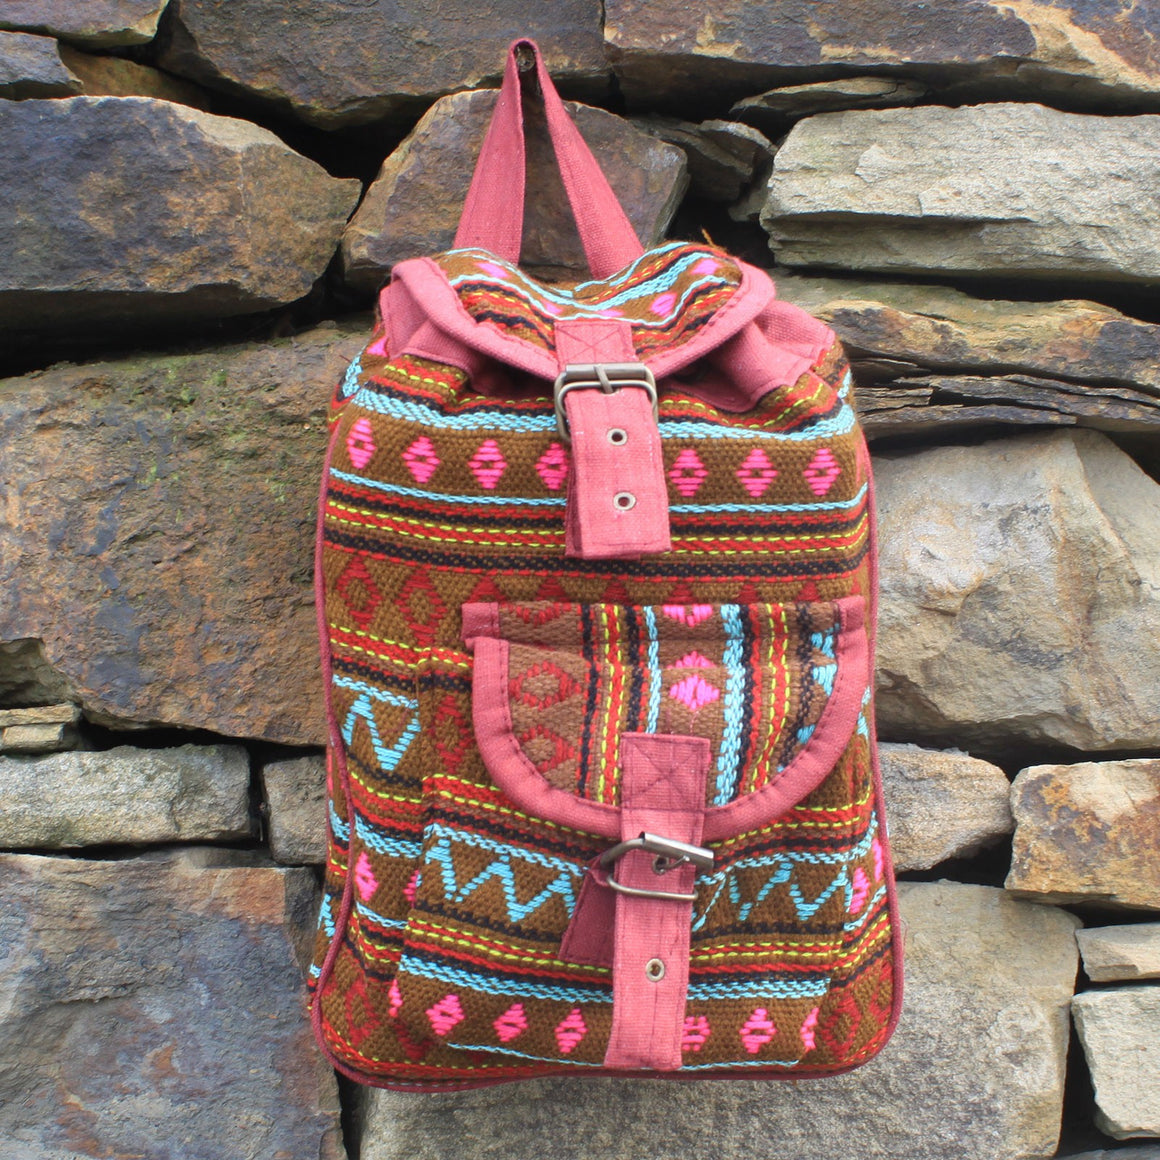 Backpacks, Bags, Kids, Olive, Outdoors, School, Small Nepali Backpacks, Travel, Undersized Backpack